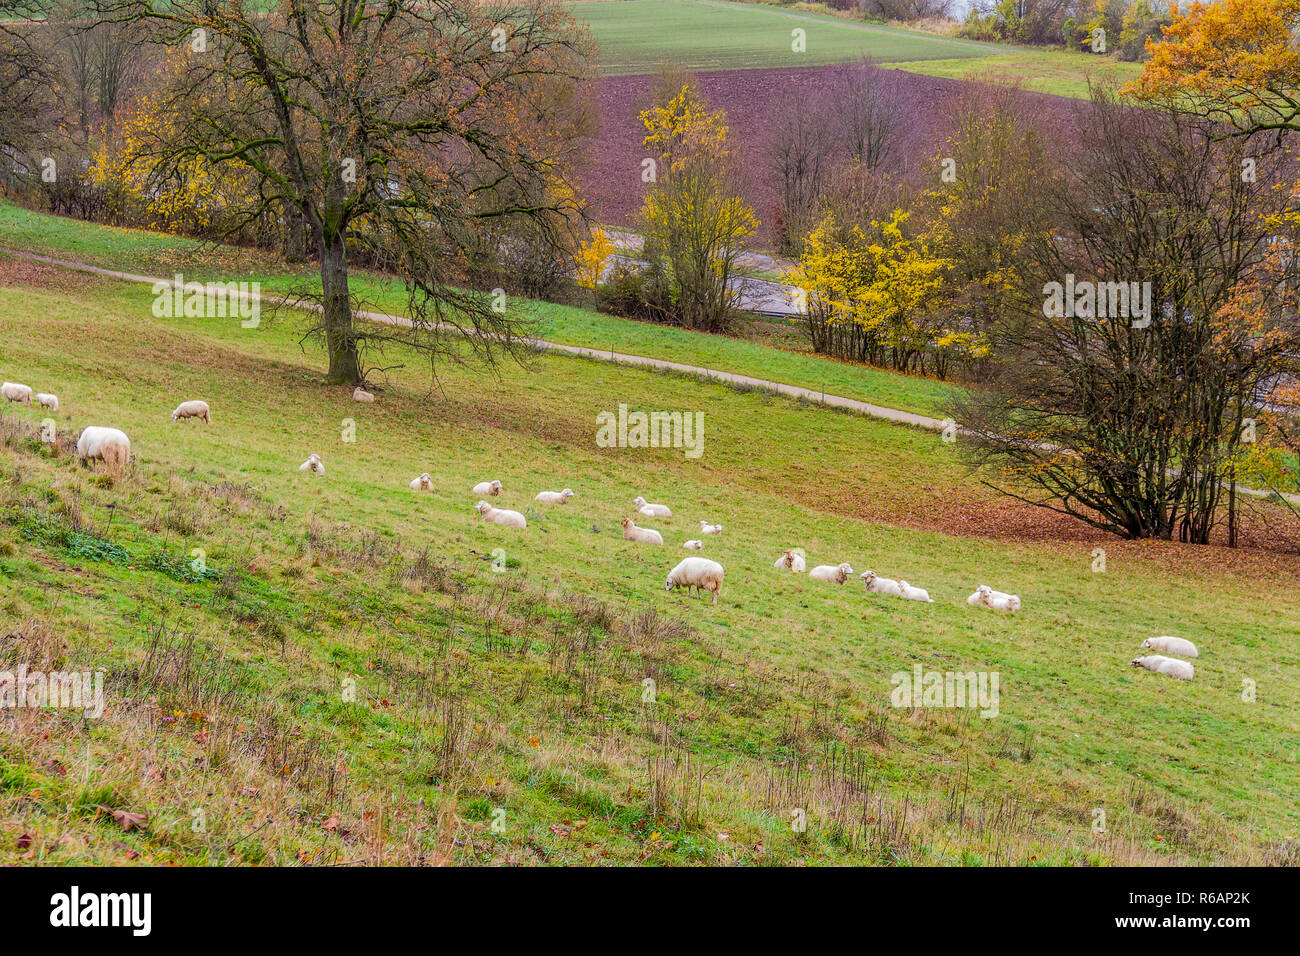 sheep in autumn ambiance - Stock Image